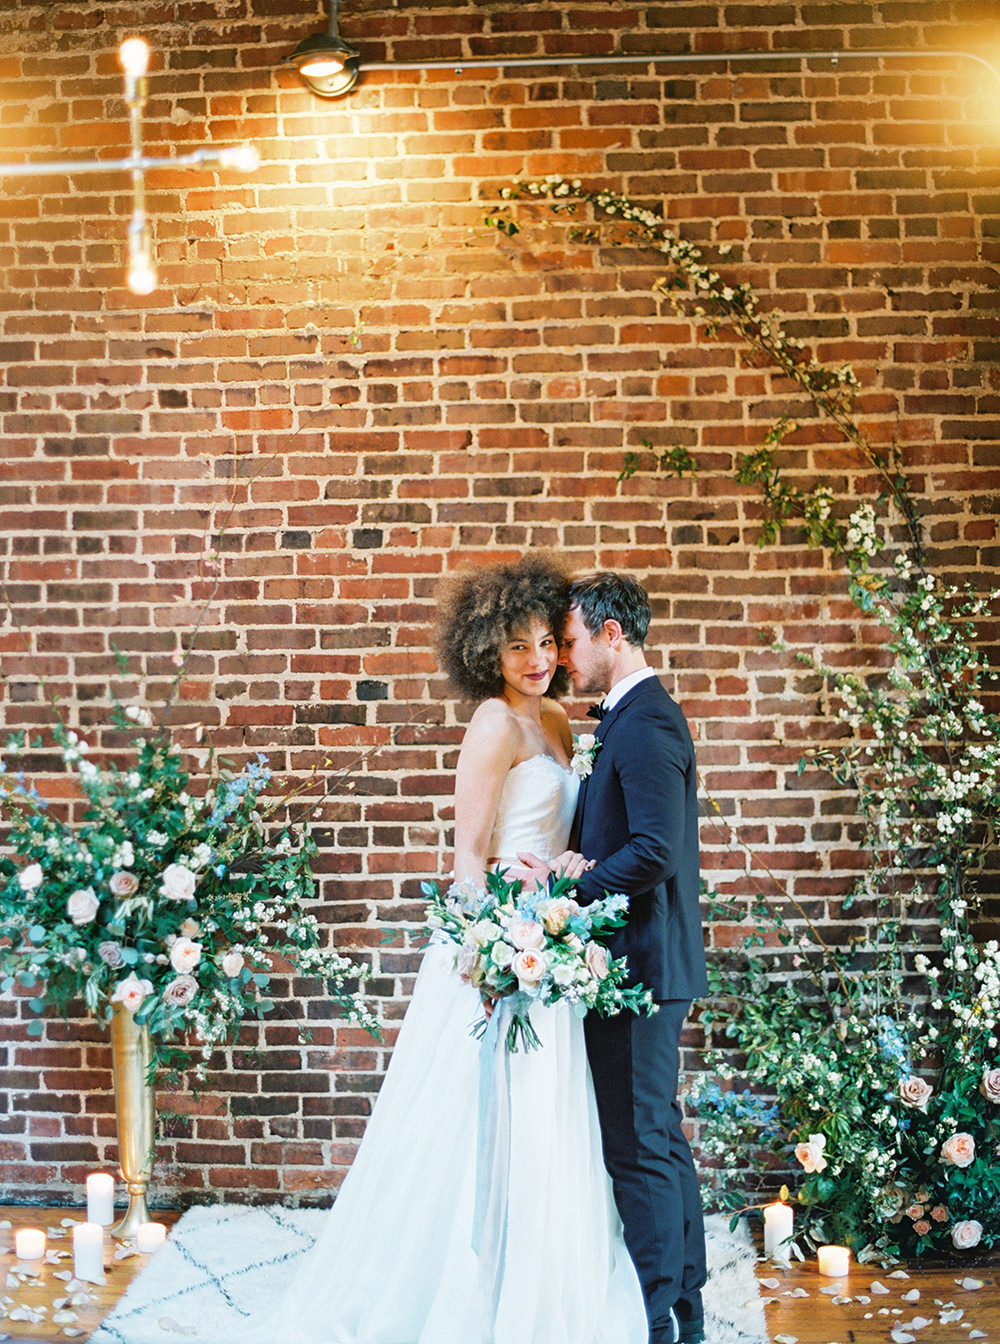 industrial wedding inspiration - photo by Photos by Heart https://ruffledblog.com/downtown-birmingham-spring-wedding-inspiration